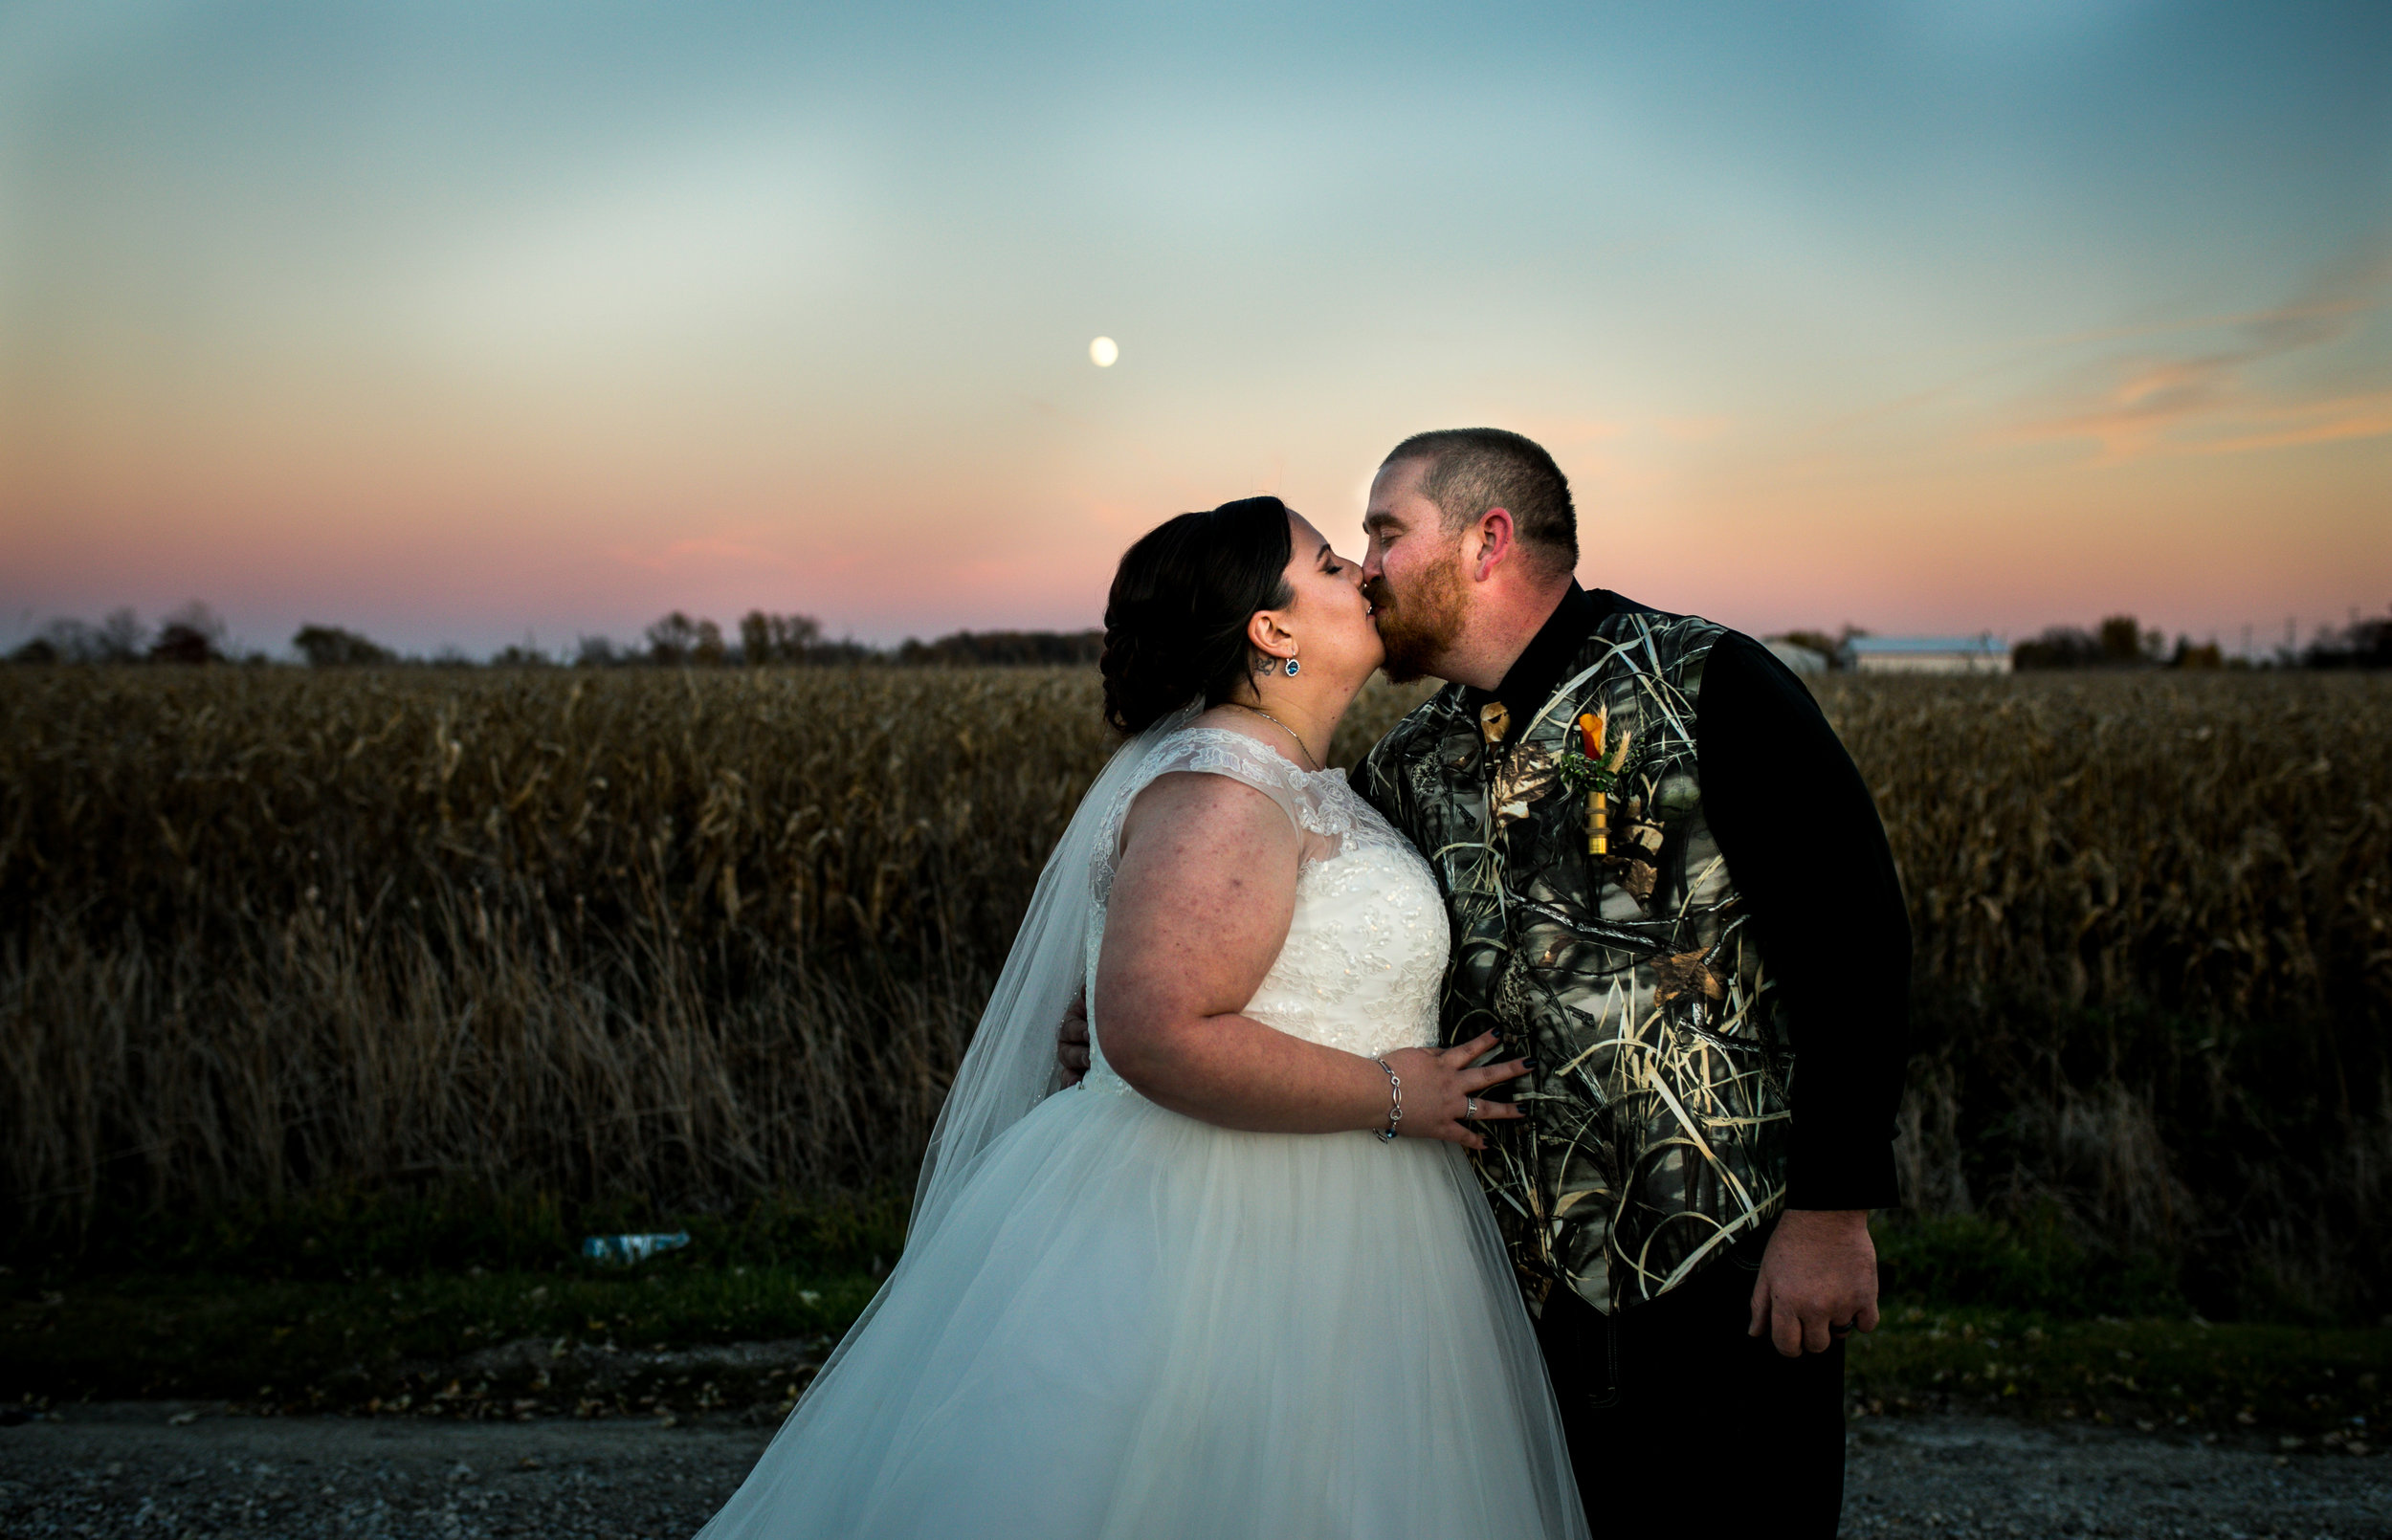 """If anyone is looking for a photographer, Anthony is your guy. So easy to work with and so much talent. Our day was so beautifully captured,"" Amanda & Adam"